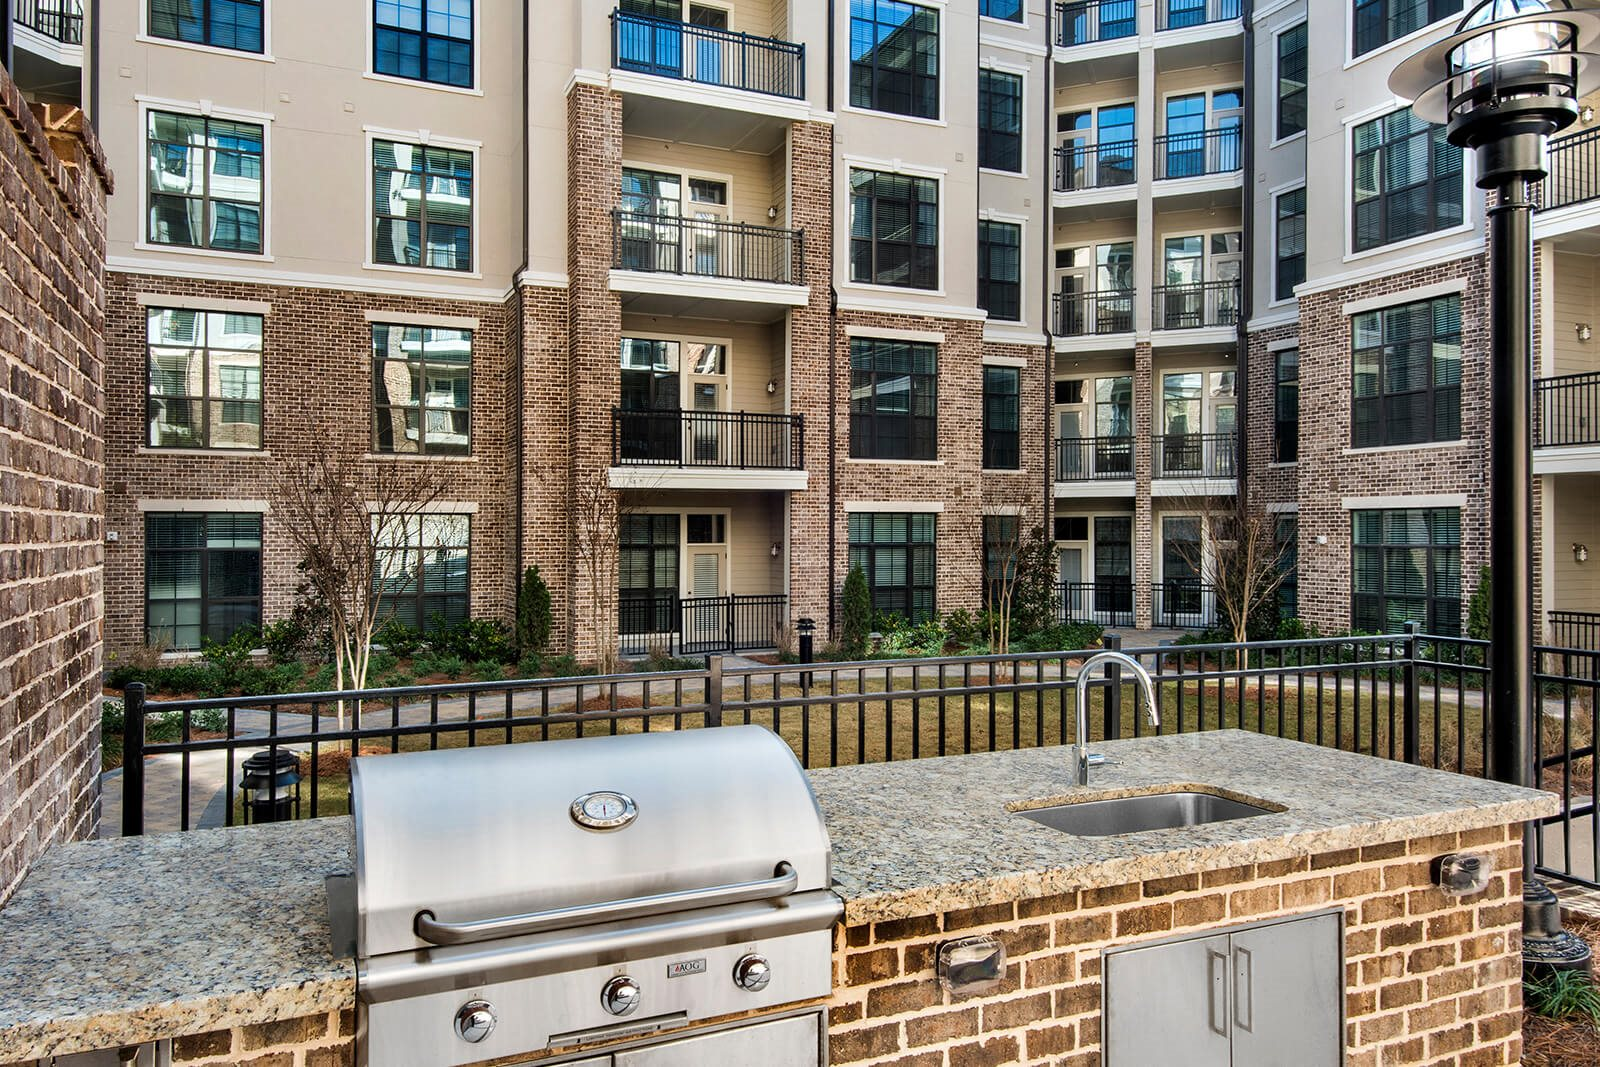 Outdoor Courtyard with BBQ Grills at Windsor Chastain, Atlanta, GA